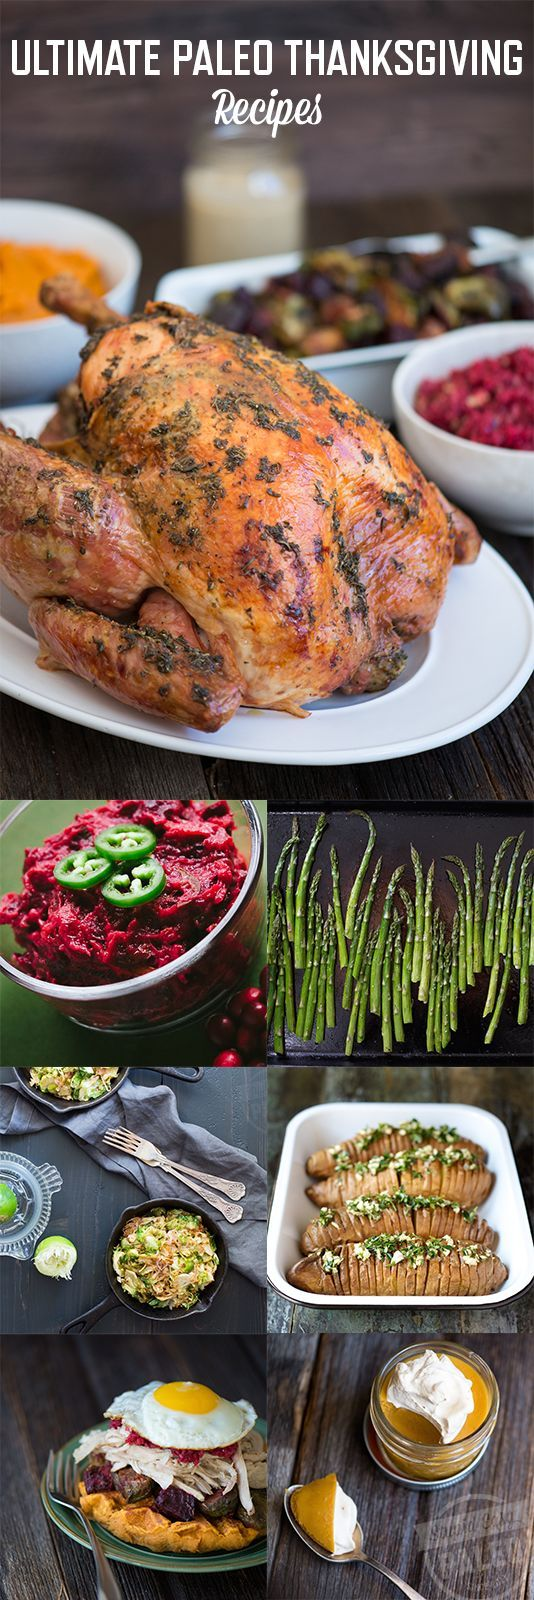 Ultimate Paleo Thanksgiving Recipes | http://stupideasypaleo.com